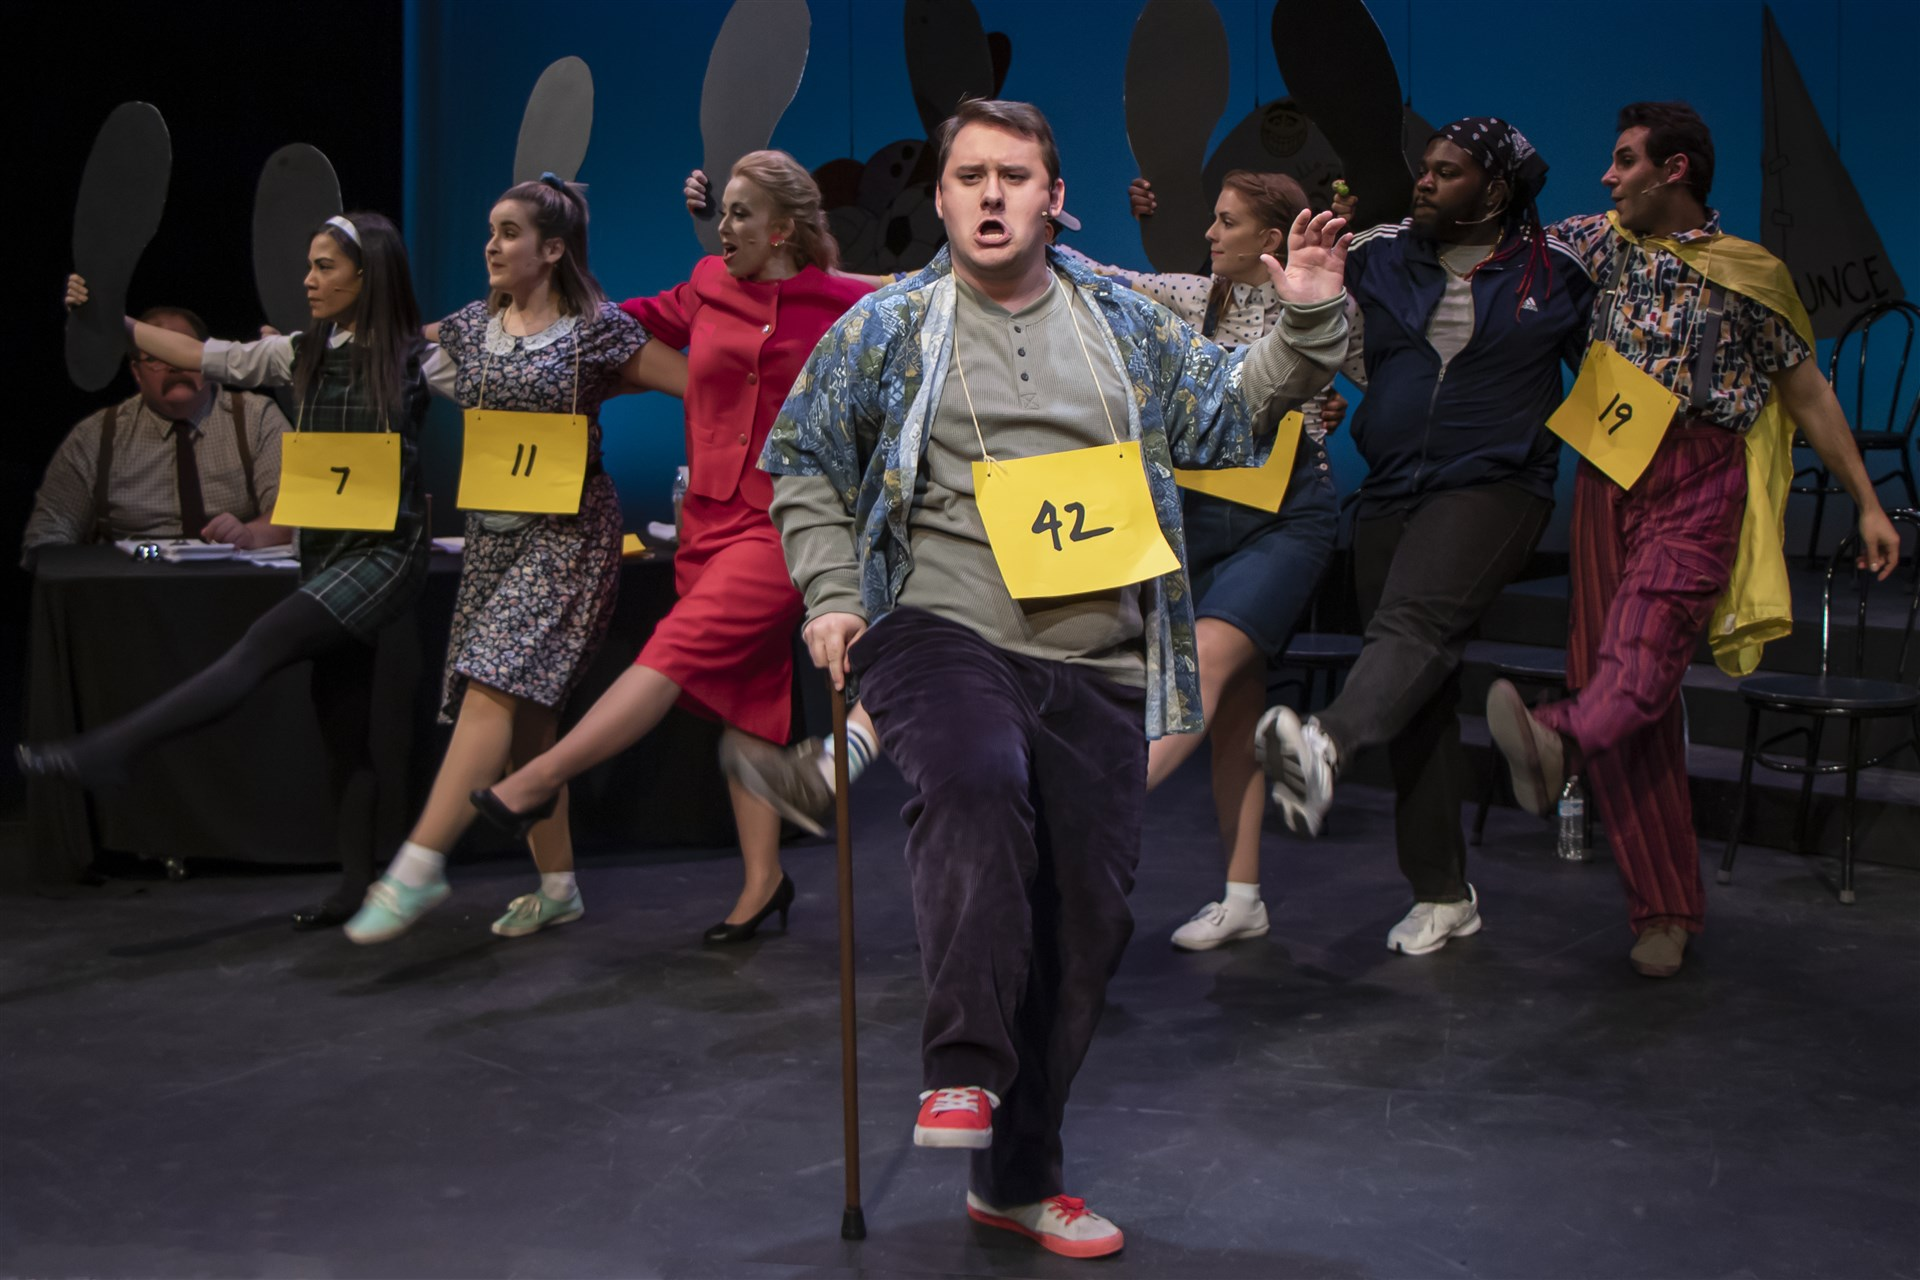 William (Gage Paterson) demonstrates his Magic Foot in a song and dance number supported by, from left, Marcy (Ashely Oviedo), Olive (Ava Bush), Rona (Samantha Sostarich), Chip (Romesh Alex Jaya), Mitch (Ernest Bell) and Leaf (Adam Quataishat).